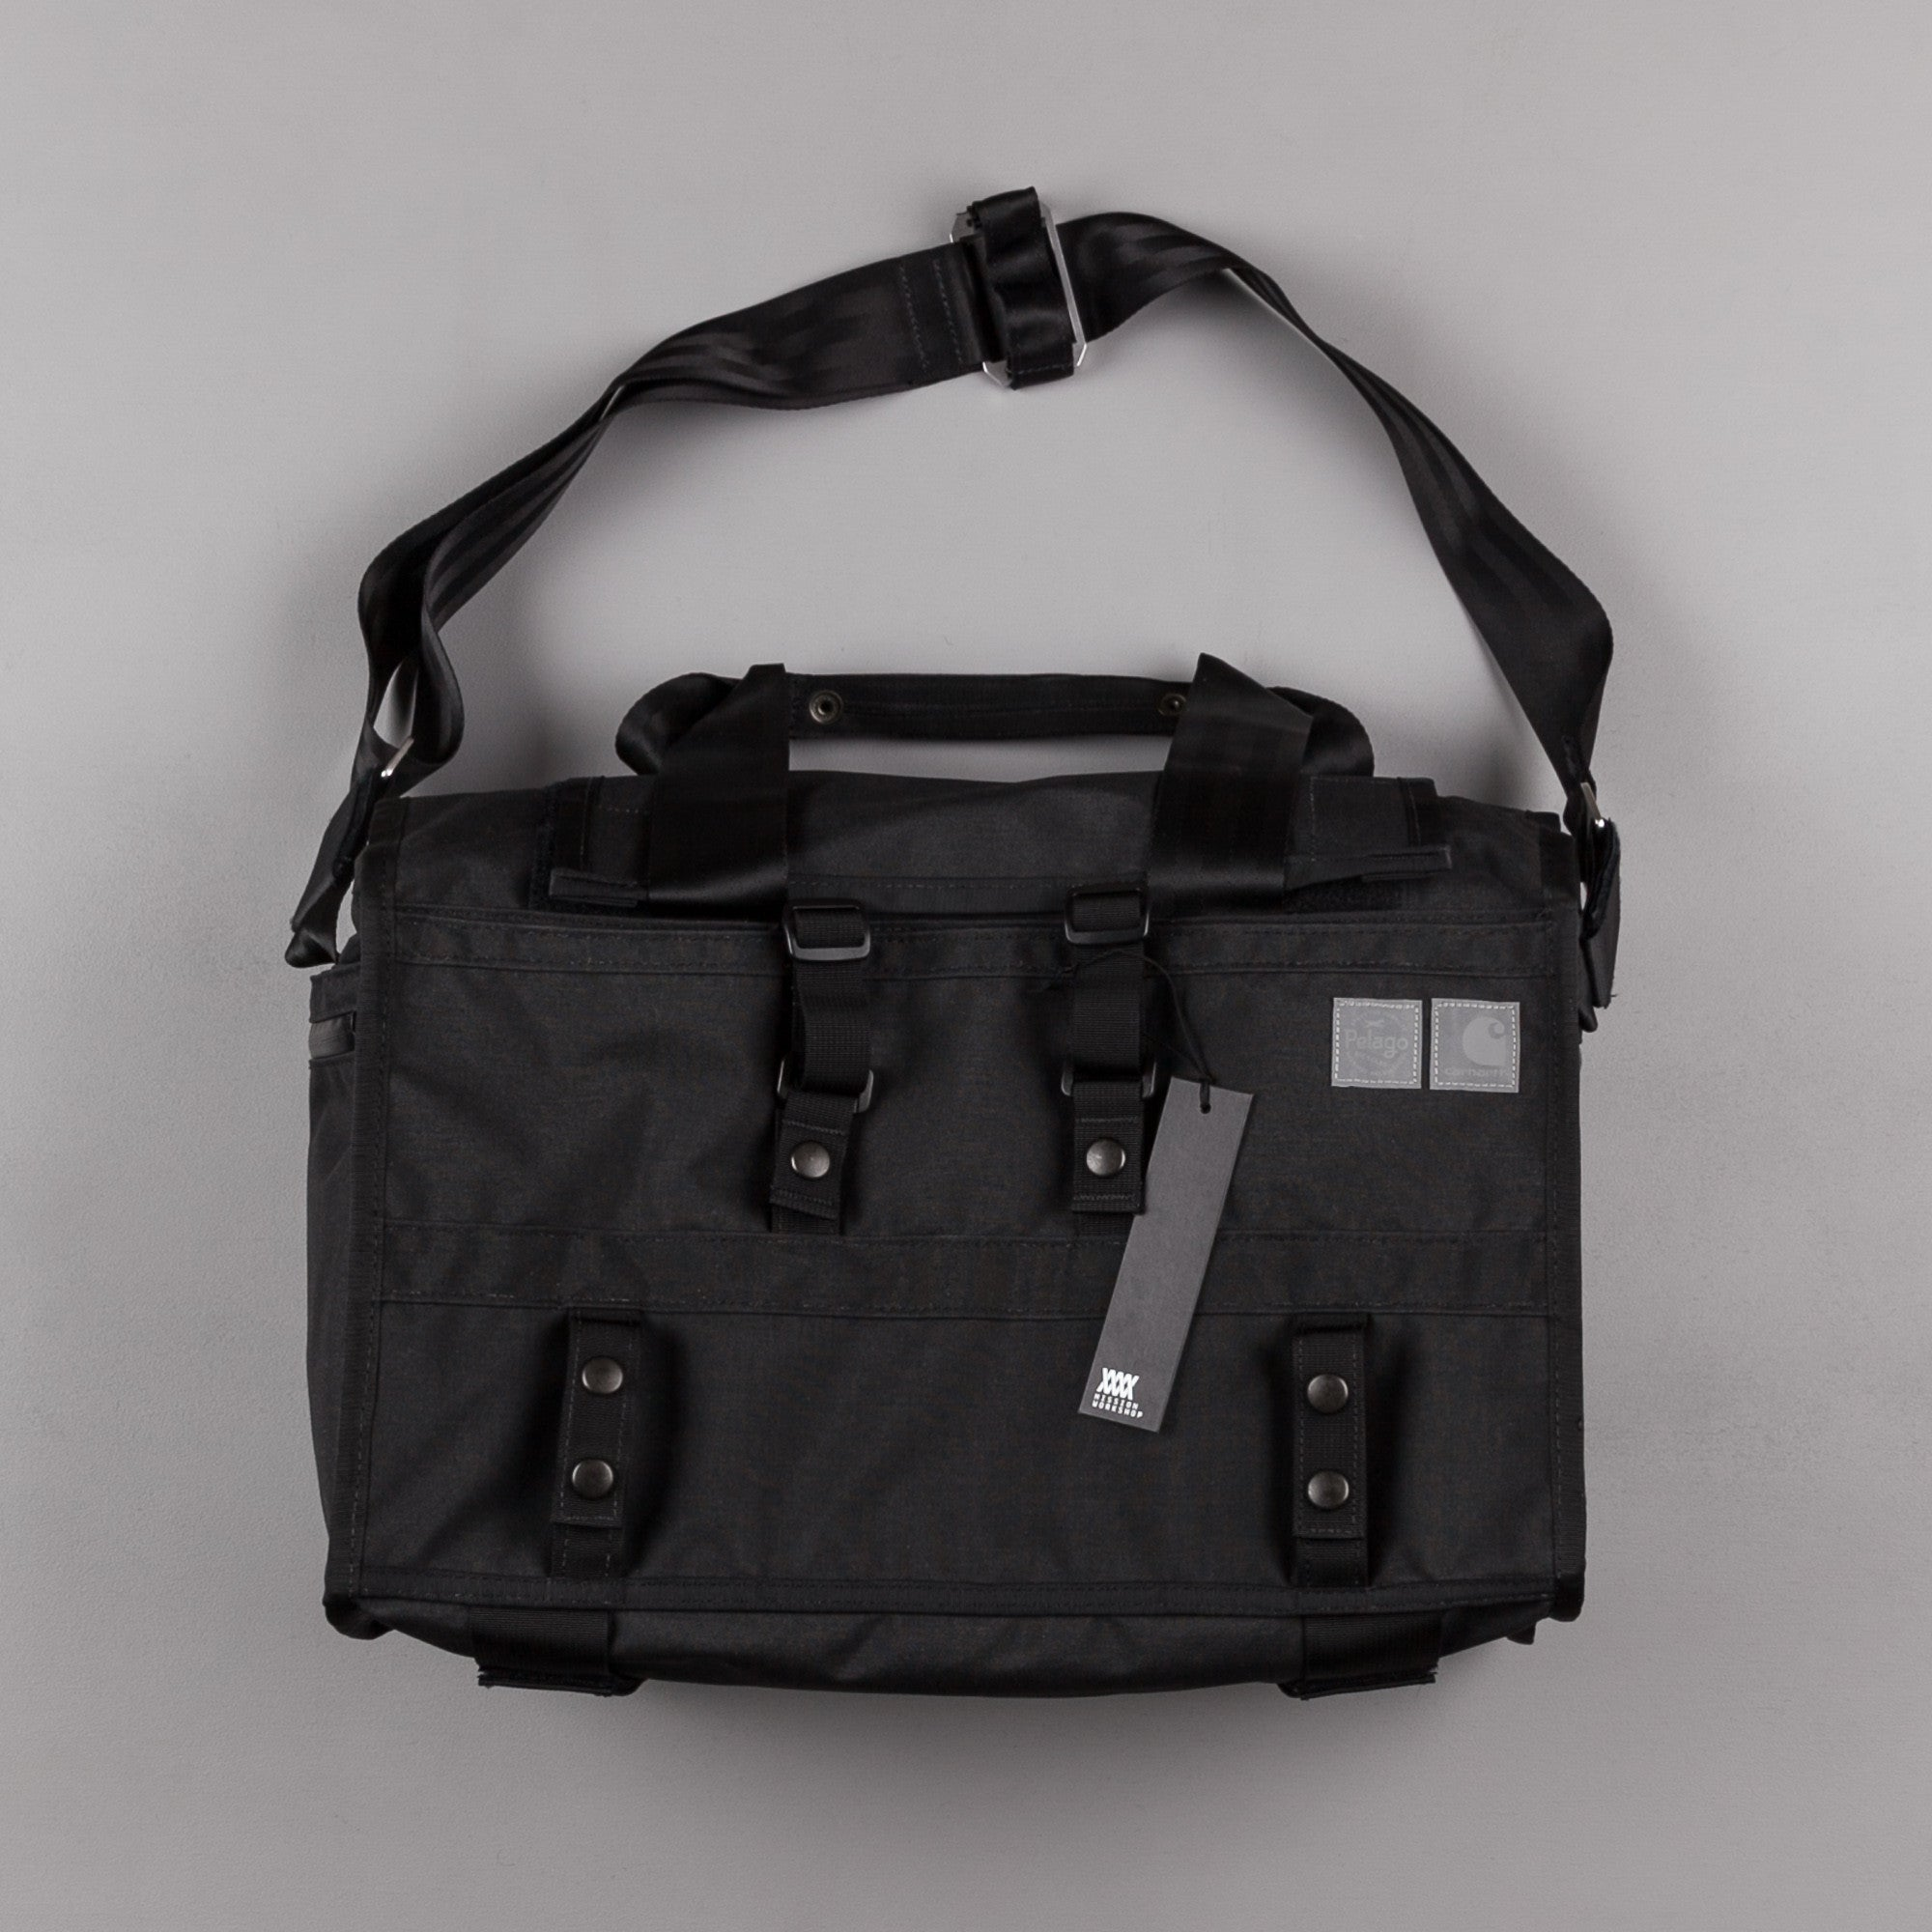 Carhartt x Pelago x Mission Workshop Bag - Black